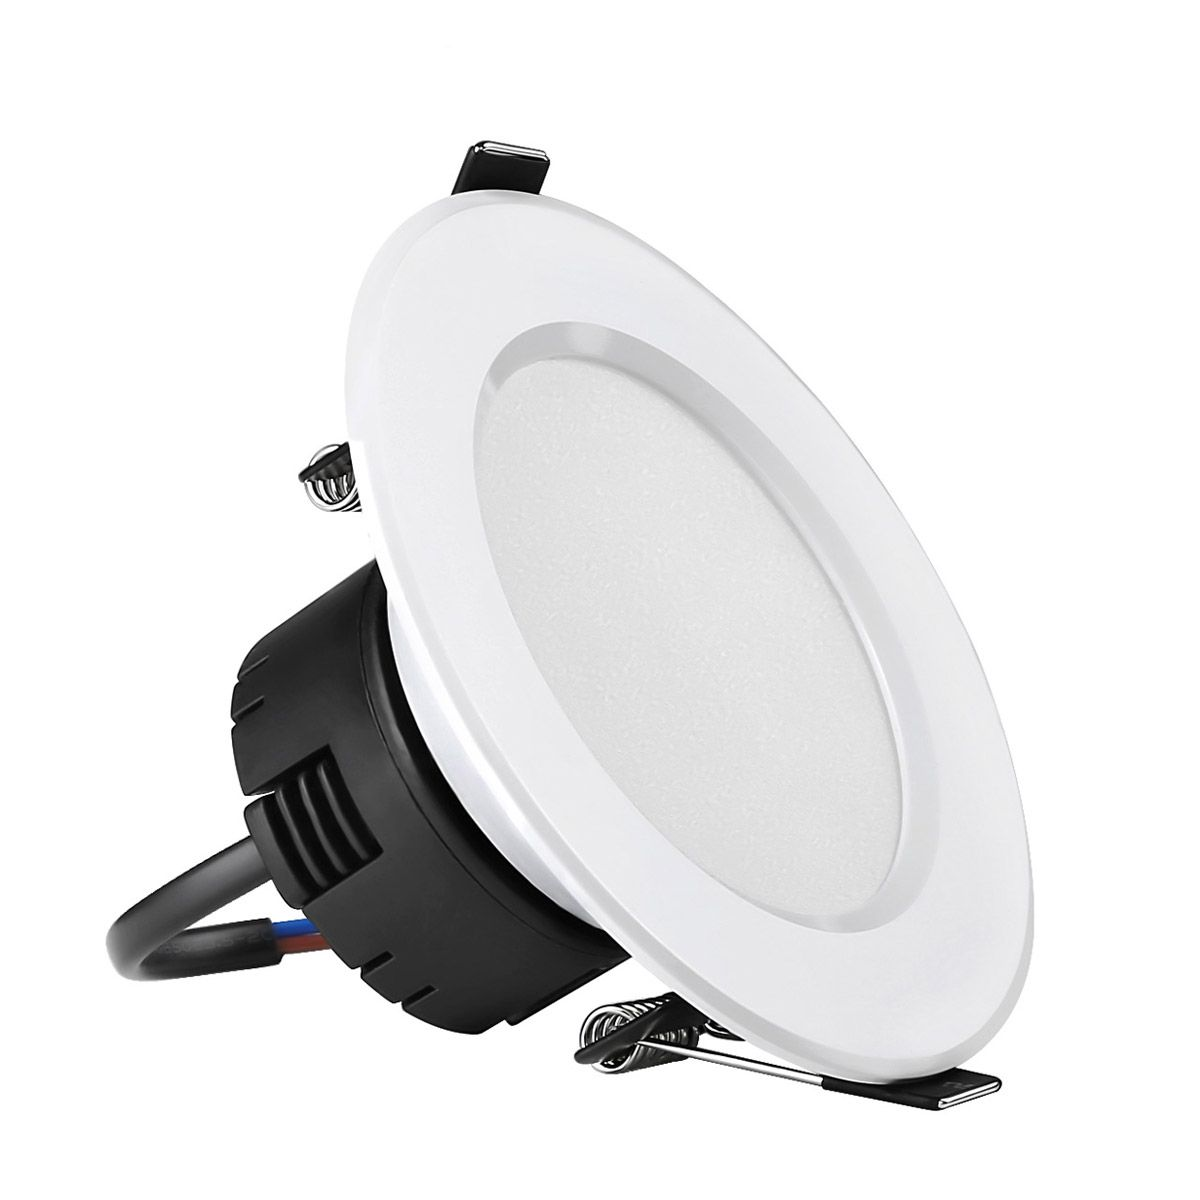 Le 8w 3 5 Inch Led Recessed Lighting 75w Halogen Bulbs Equivalent Not Dimmable Led Driver Included 400lm Warm White 3000k 90 Beam Angle Recessed Ceiling Lights Recessed Lights Led Downlight Recessed Ceiling